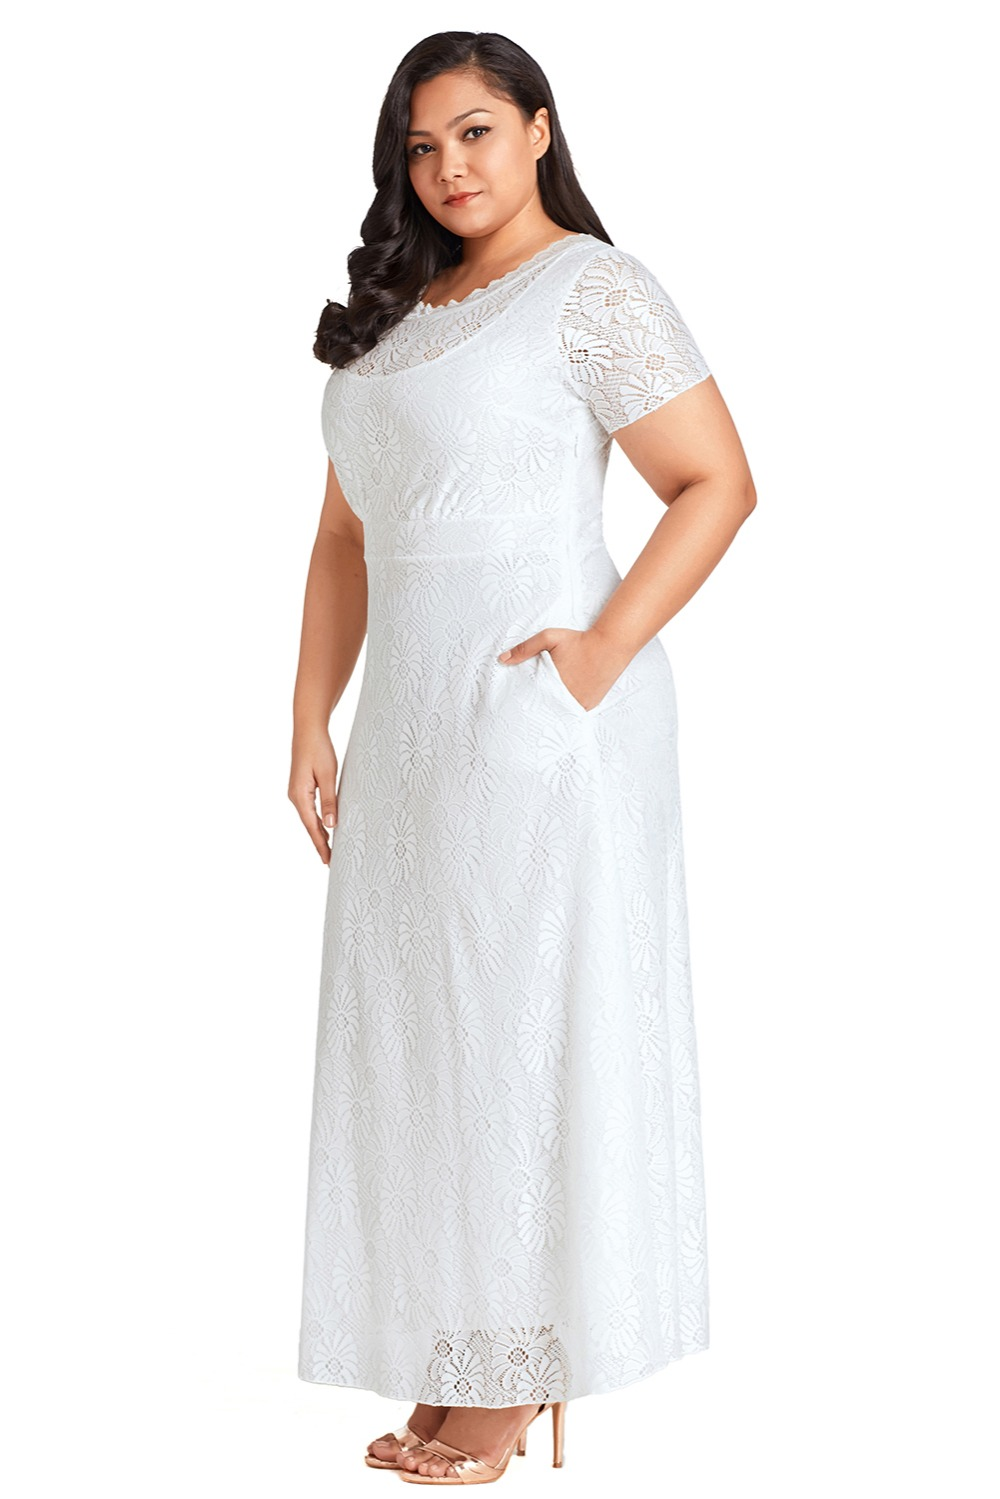 White-Plus-Size-Lace-Party-Gown-LC61917-1-4